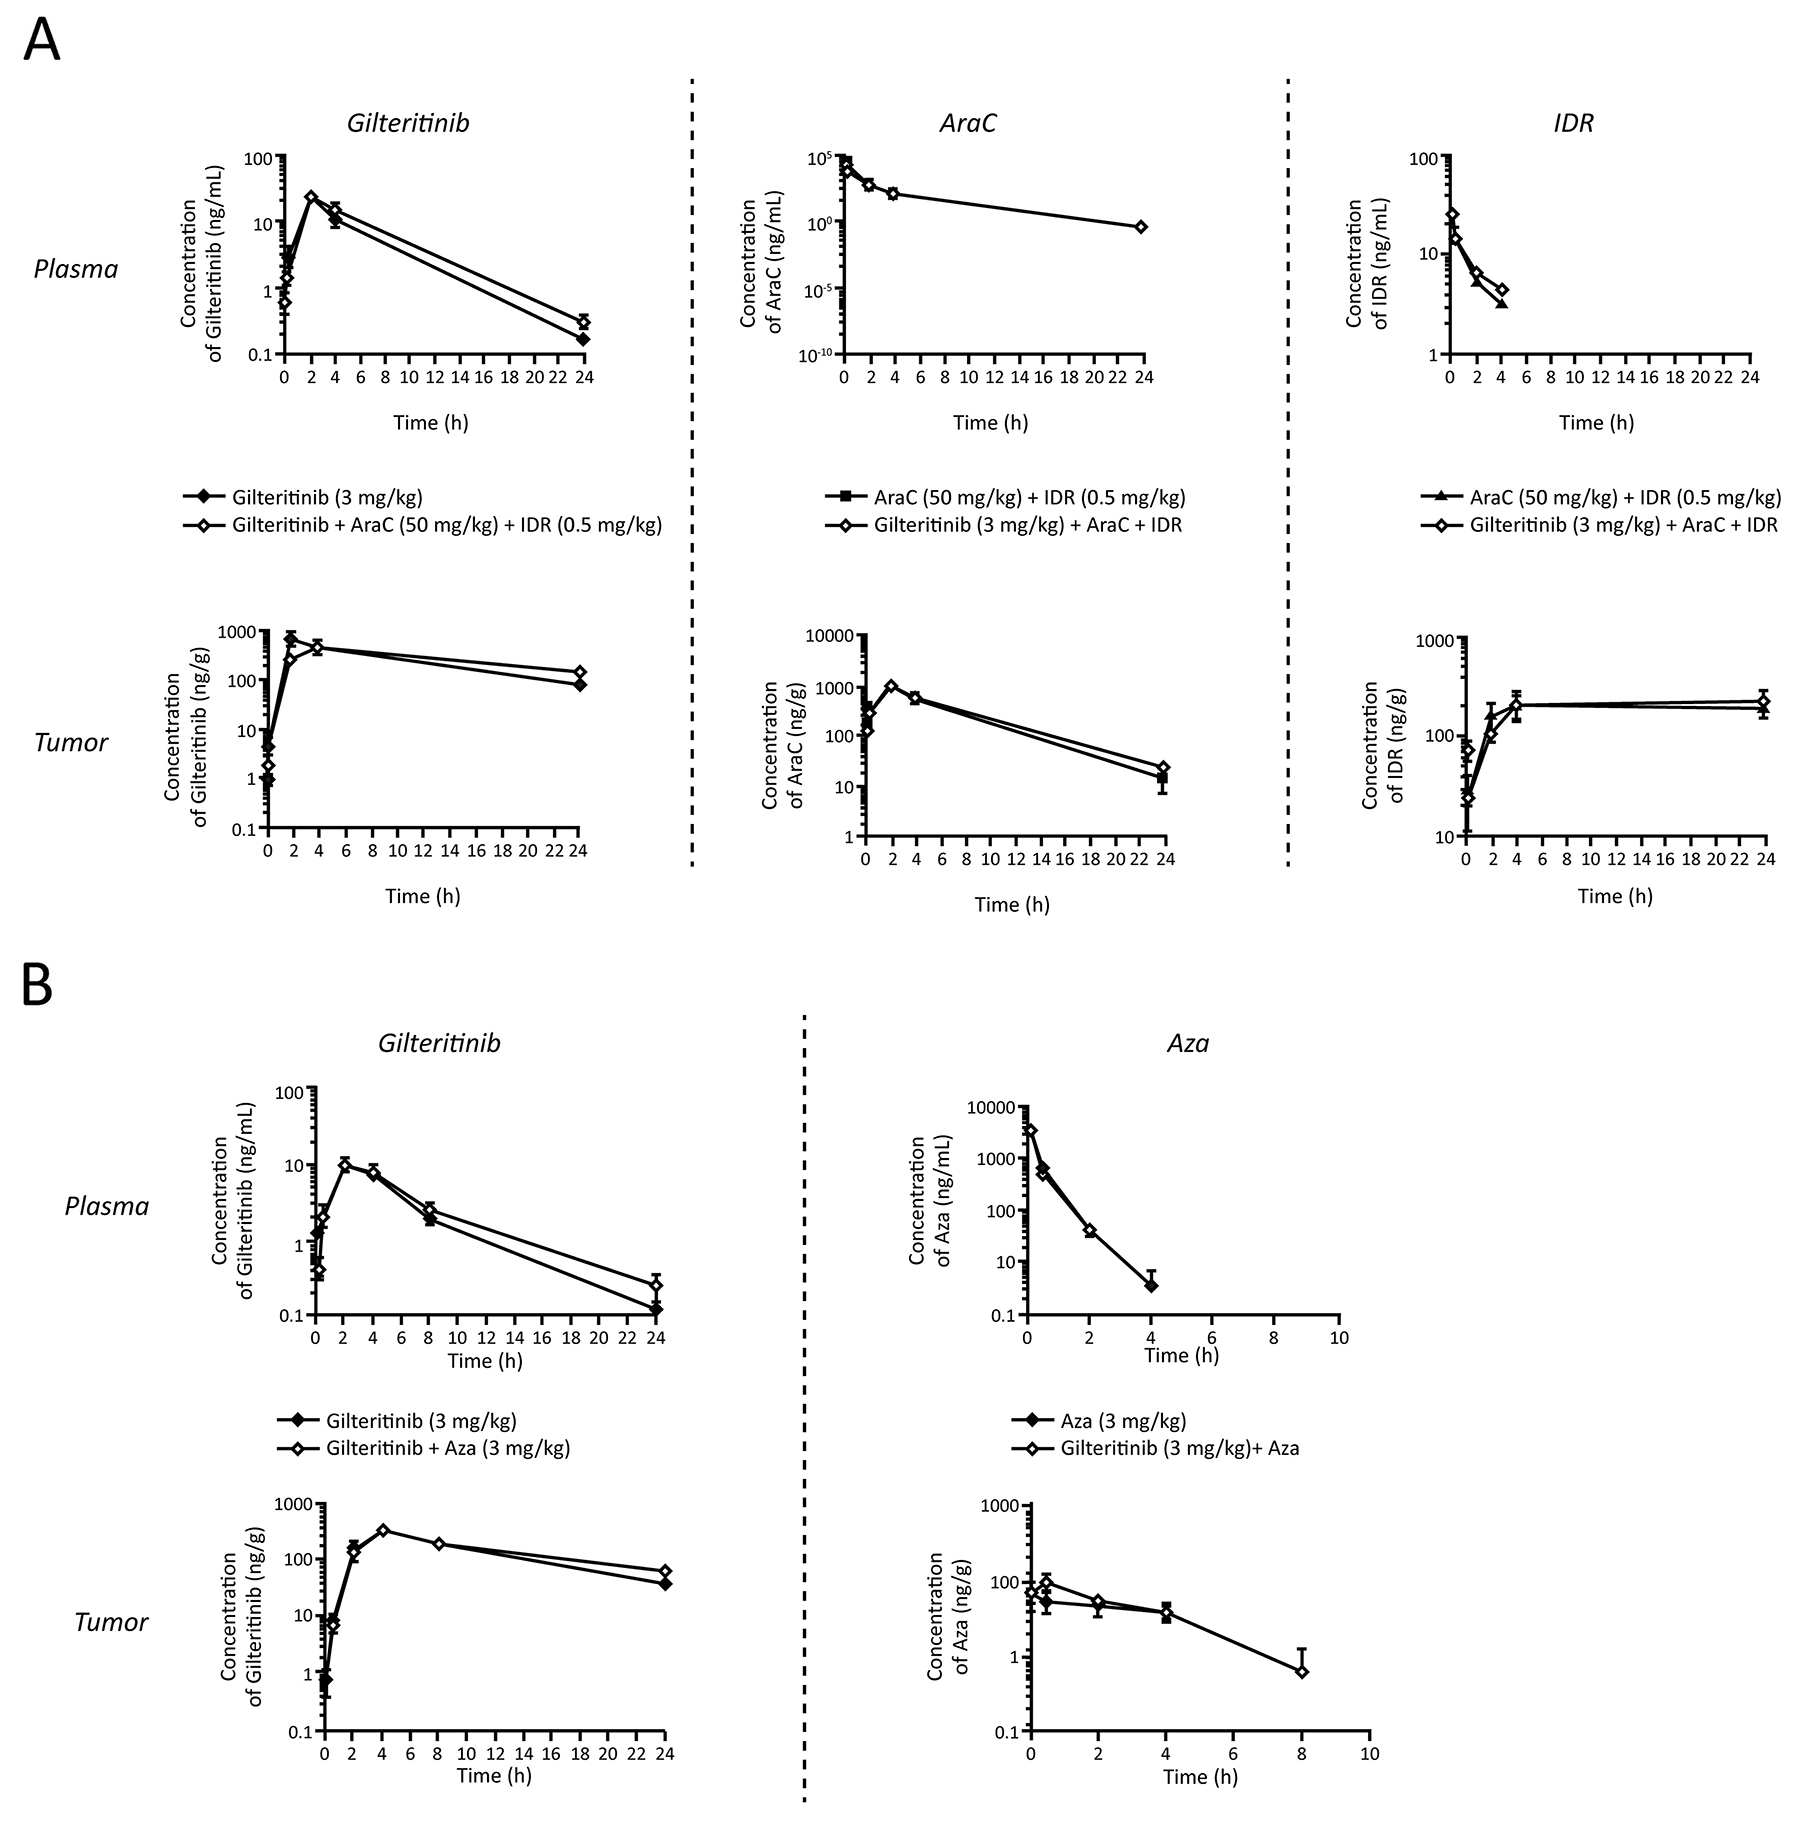 Pharmacokinetic profiles of gilteritinib, AraC, IDR, and Aza in xenografted nude mice.